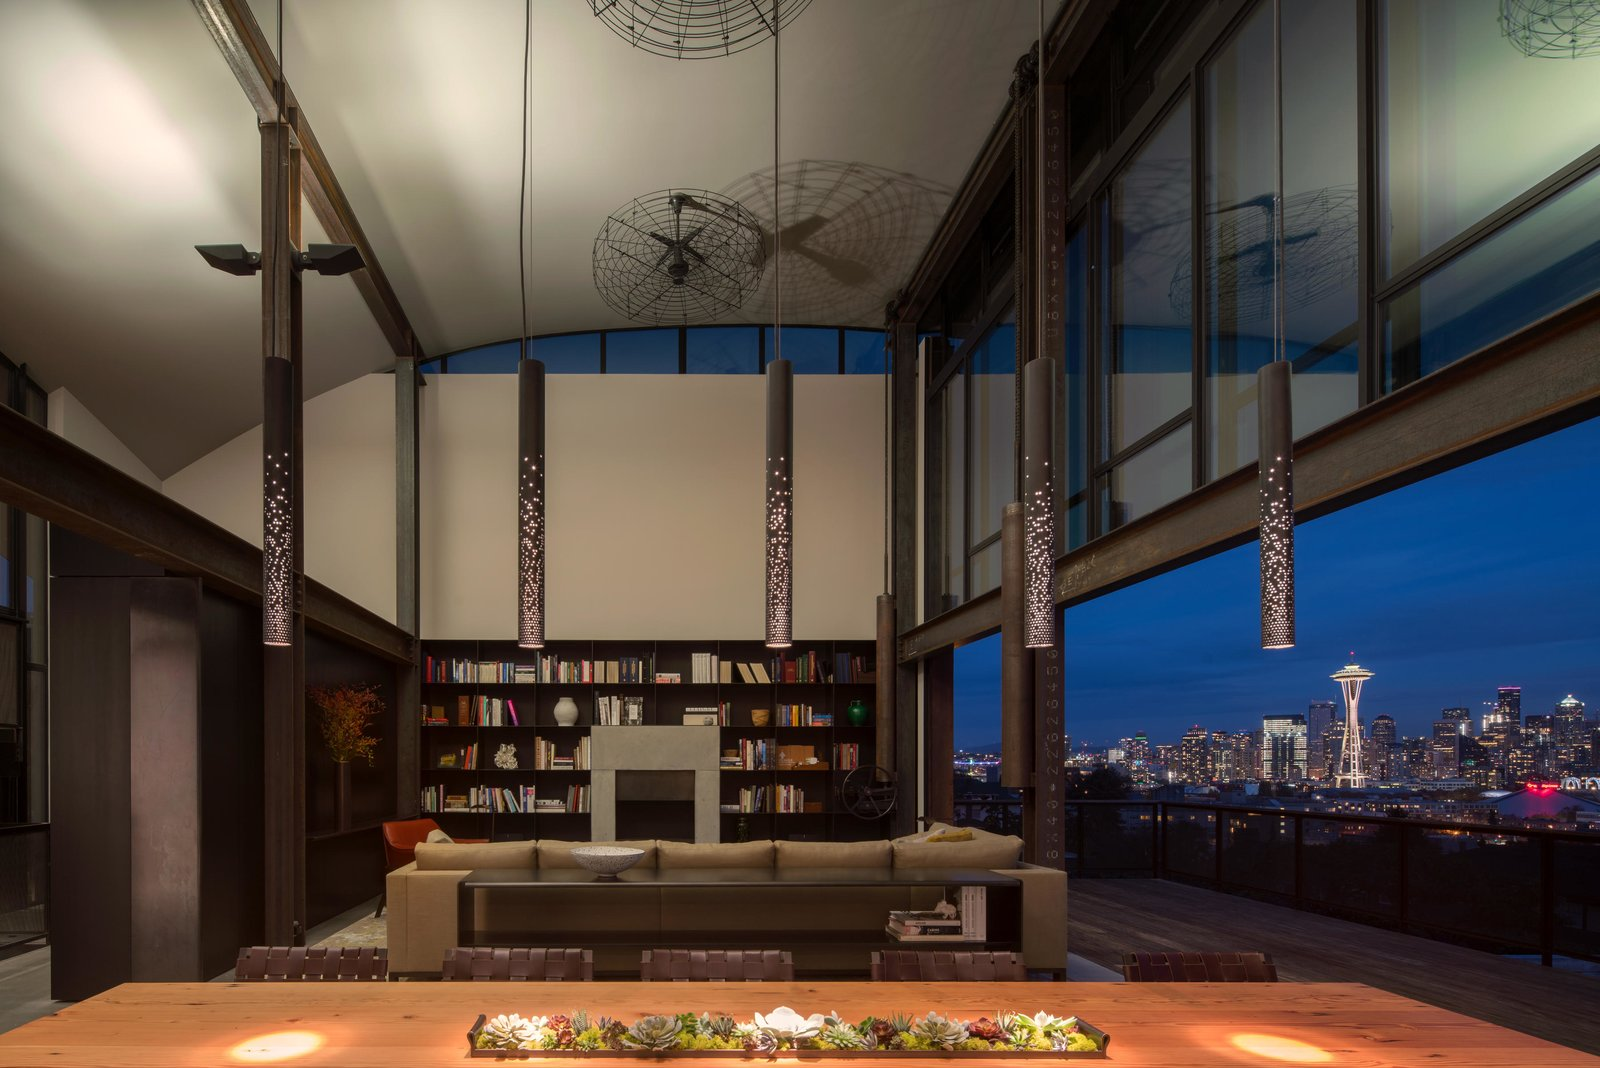 Living Room, Chair, Sofa, Sectional, Coffee Tables, Console Tables, Bookcase, Pendant Lighting, Ceiling Lighting, Recessed Lighting, Concrete Floor, and Standard Layout Fireplace Meg Home | Olson Kundig  Meg Home by Olson Kundig